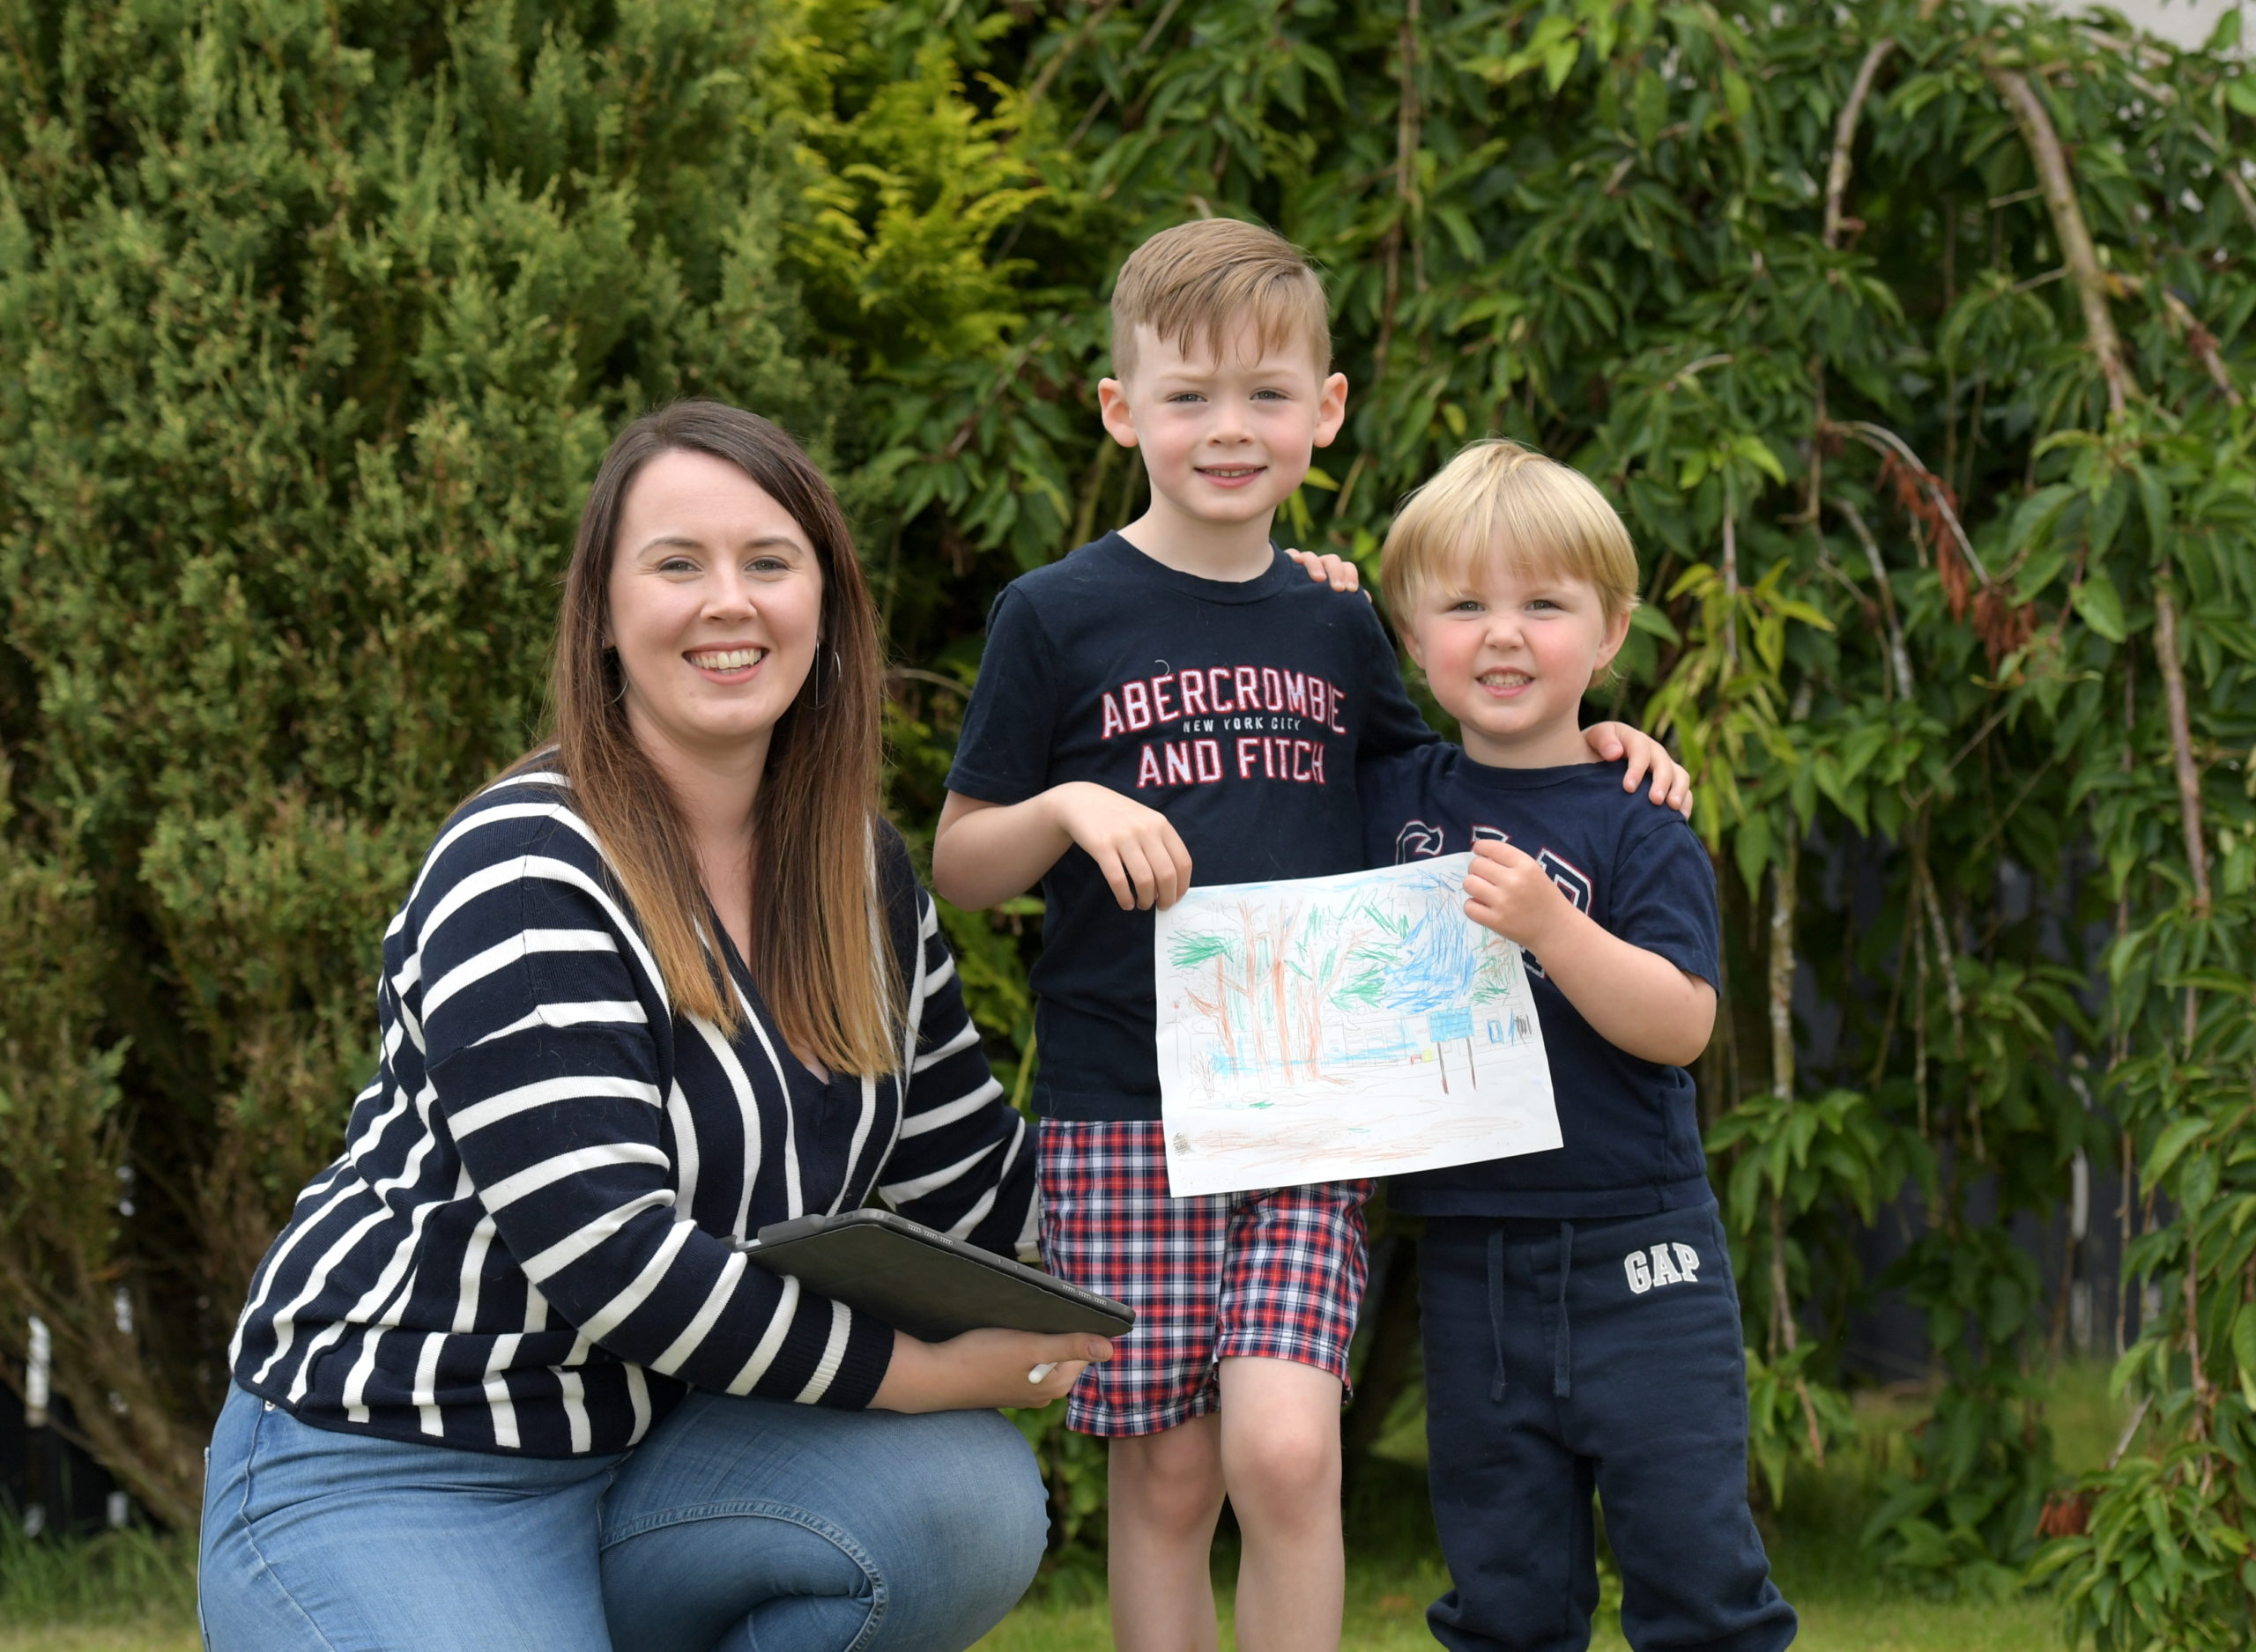 Nicola Robertson and her two sons Logan and Oliver